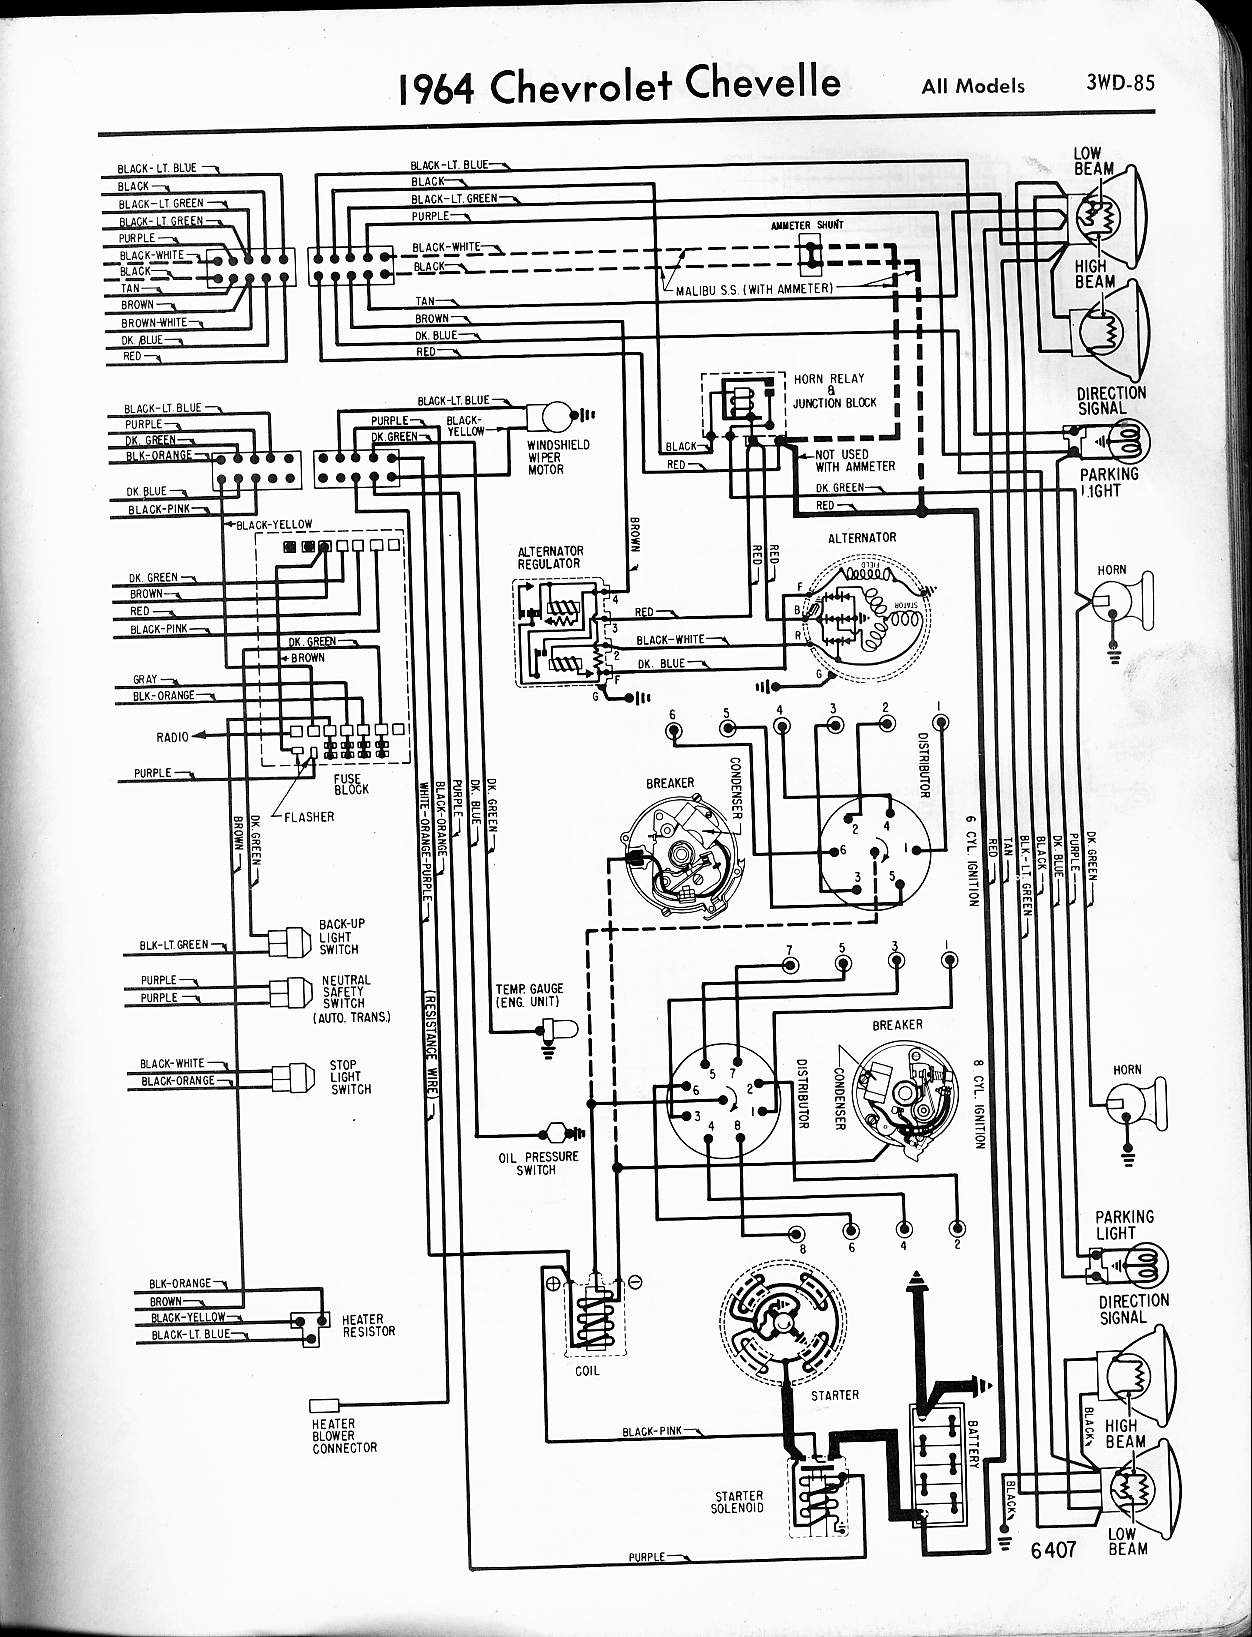 1966 Chevelle Wiring Harness Library Porsche 912 Diagram Schematic Chevy Diagrams Rh Wizard Com 1967 Online